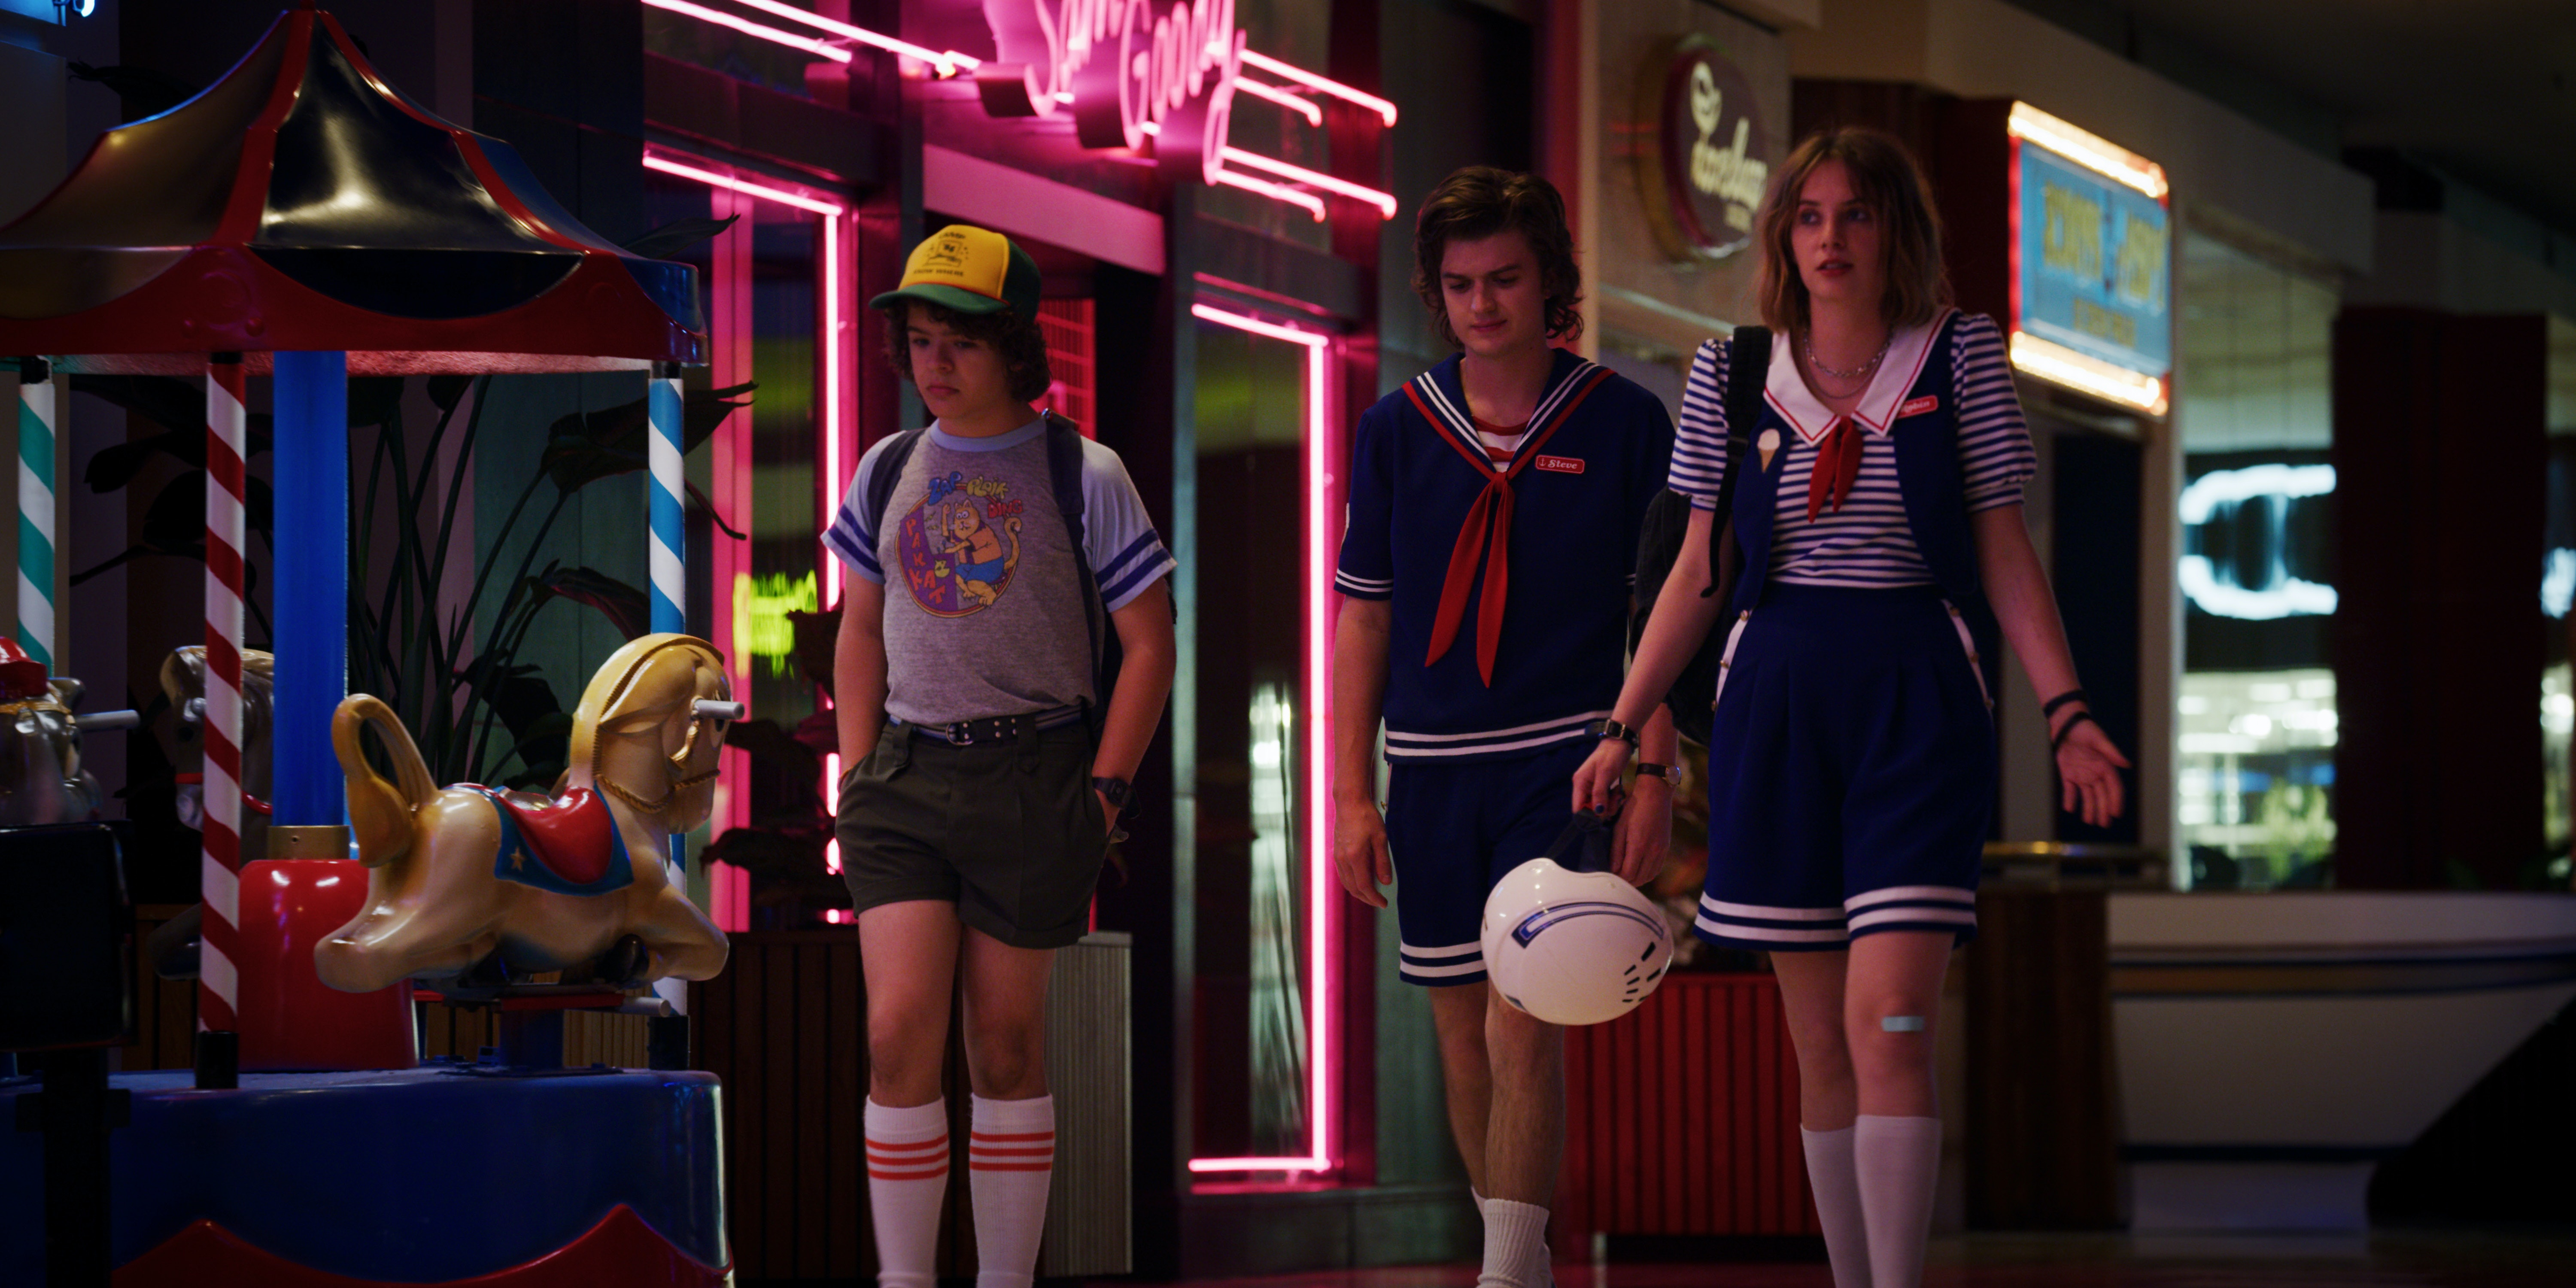 What The 'Stranger Things 3' Costumes Reveal About Each